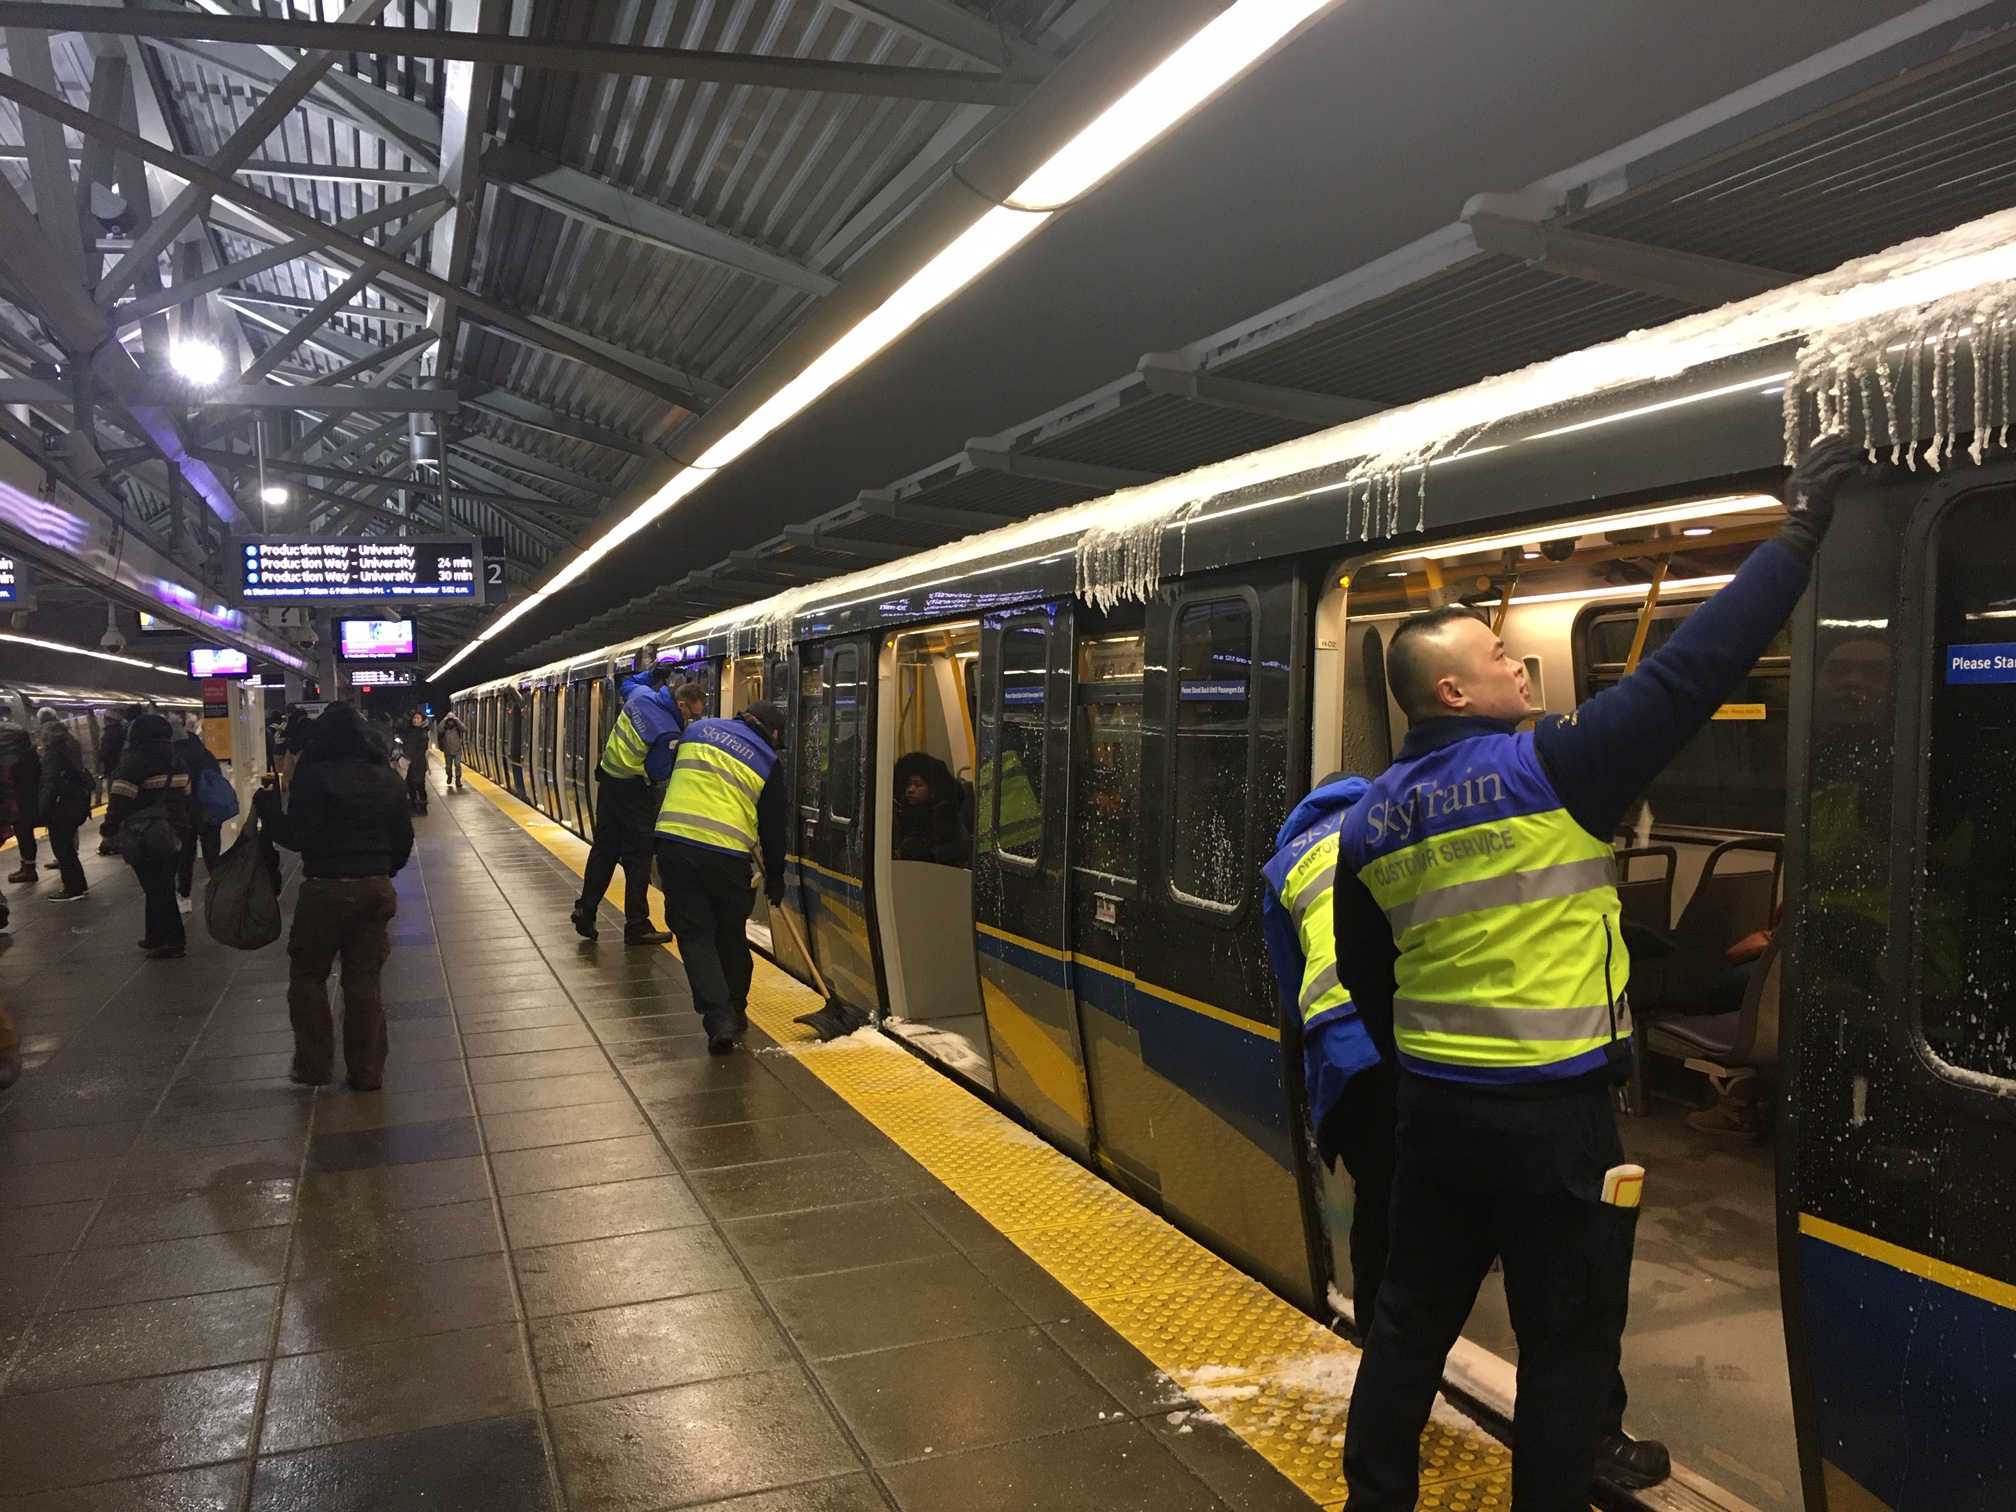 SkyTrain delays, downed trolley wires and more TransLink issues for Friday's commute